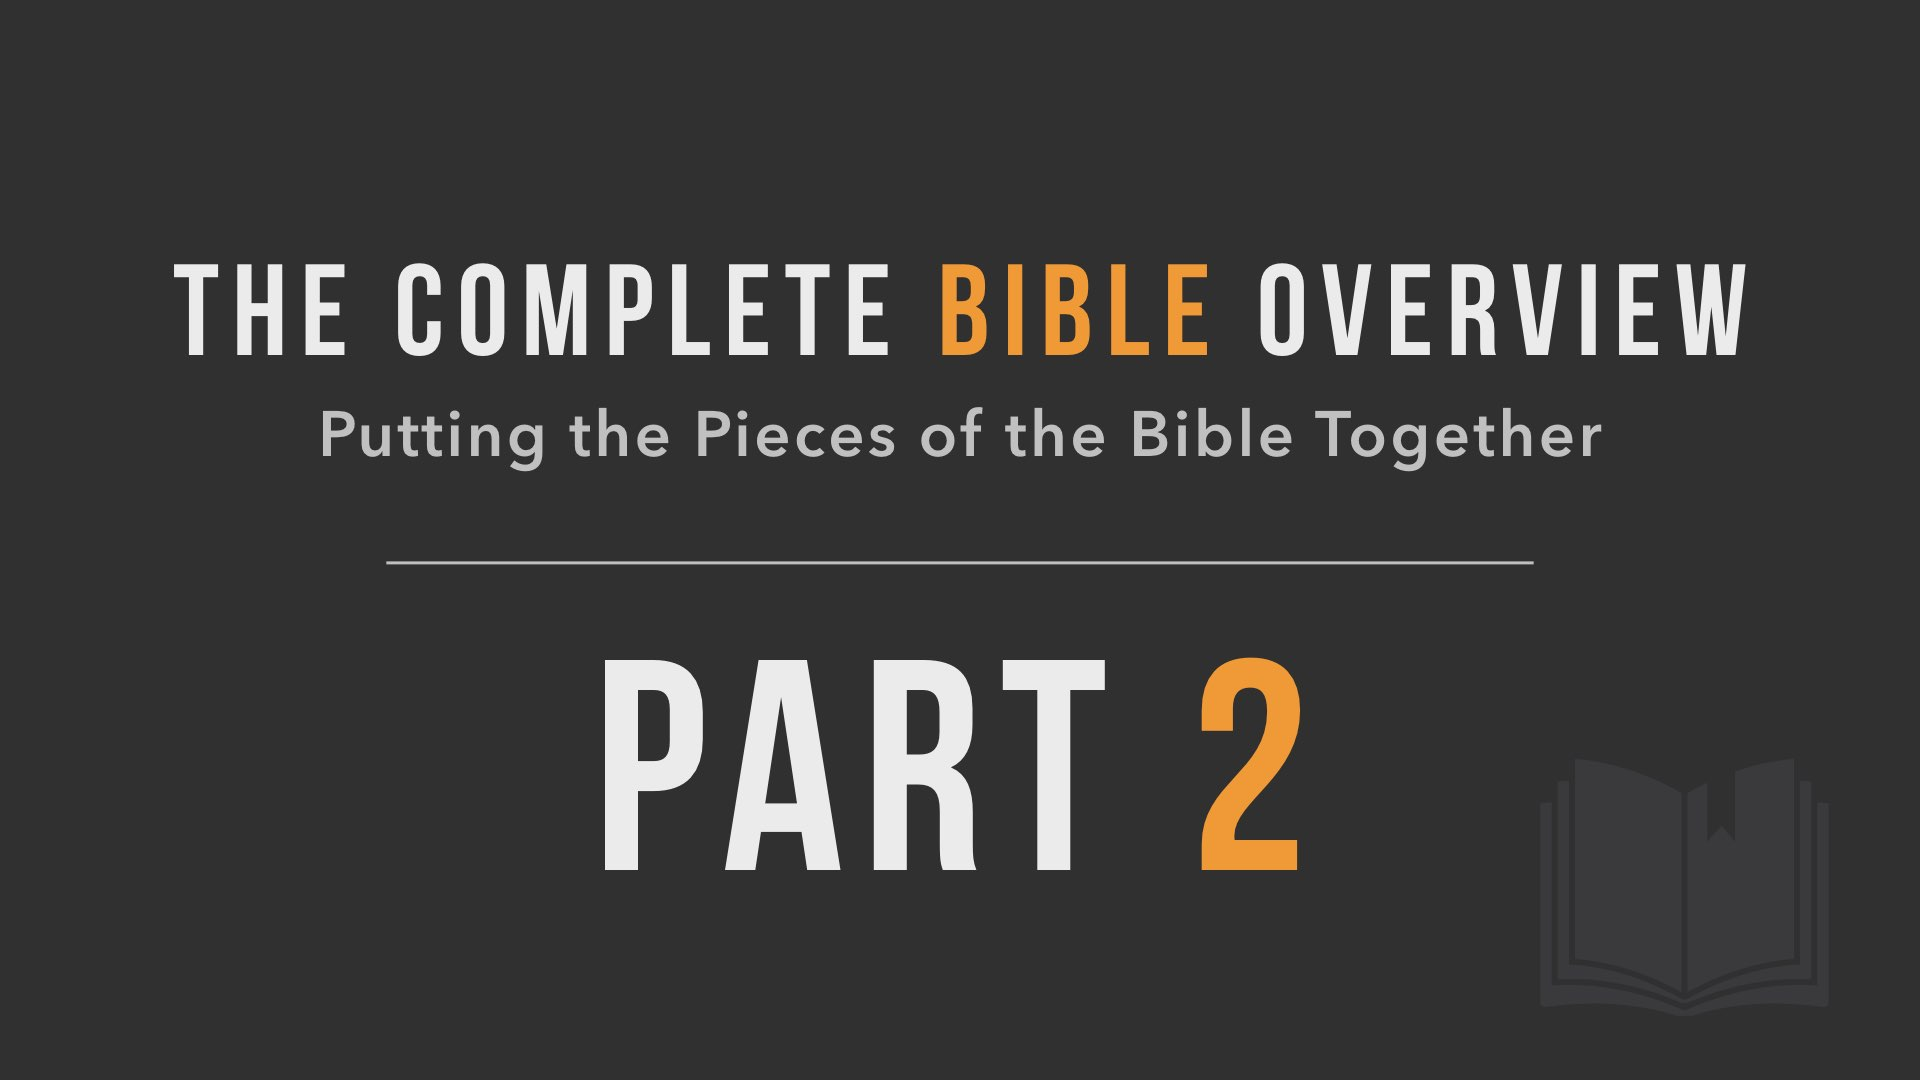 The Complete Bible Overview Part 2 Course